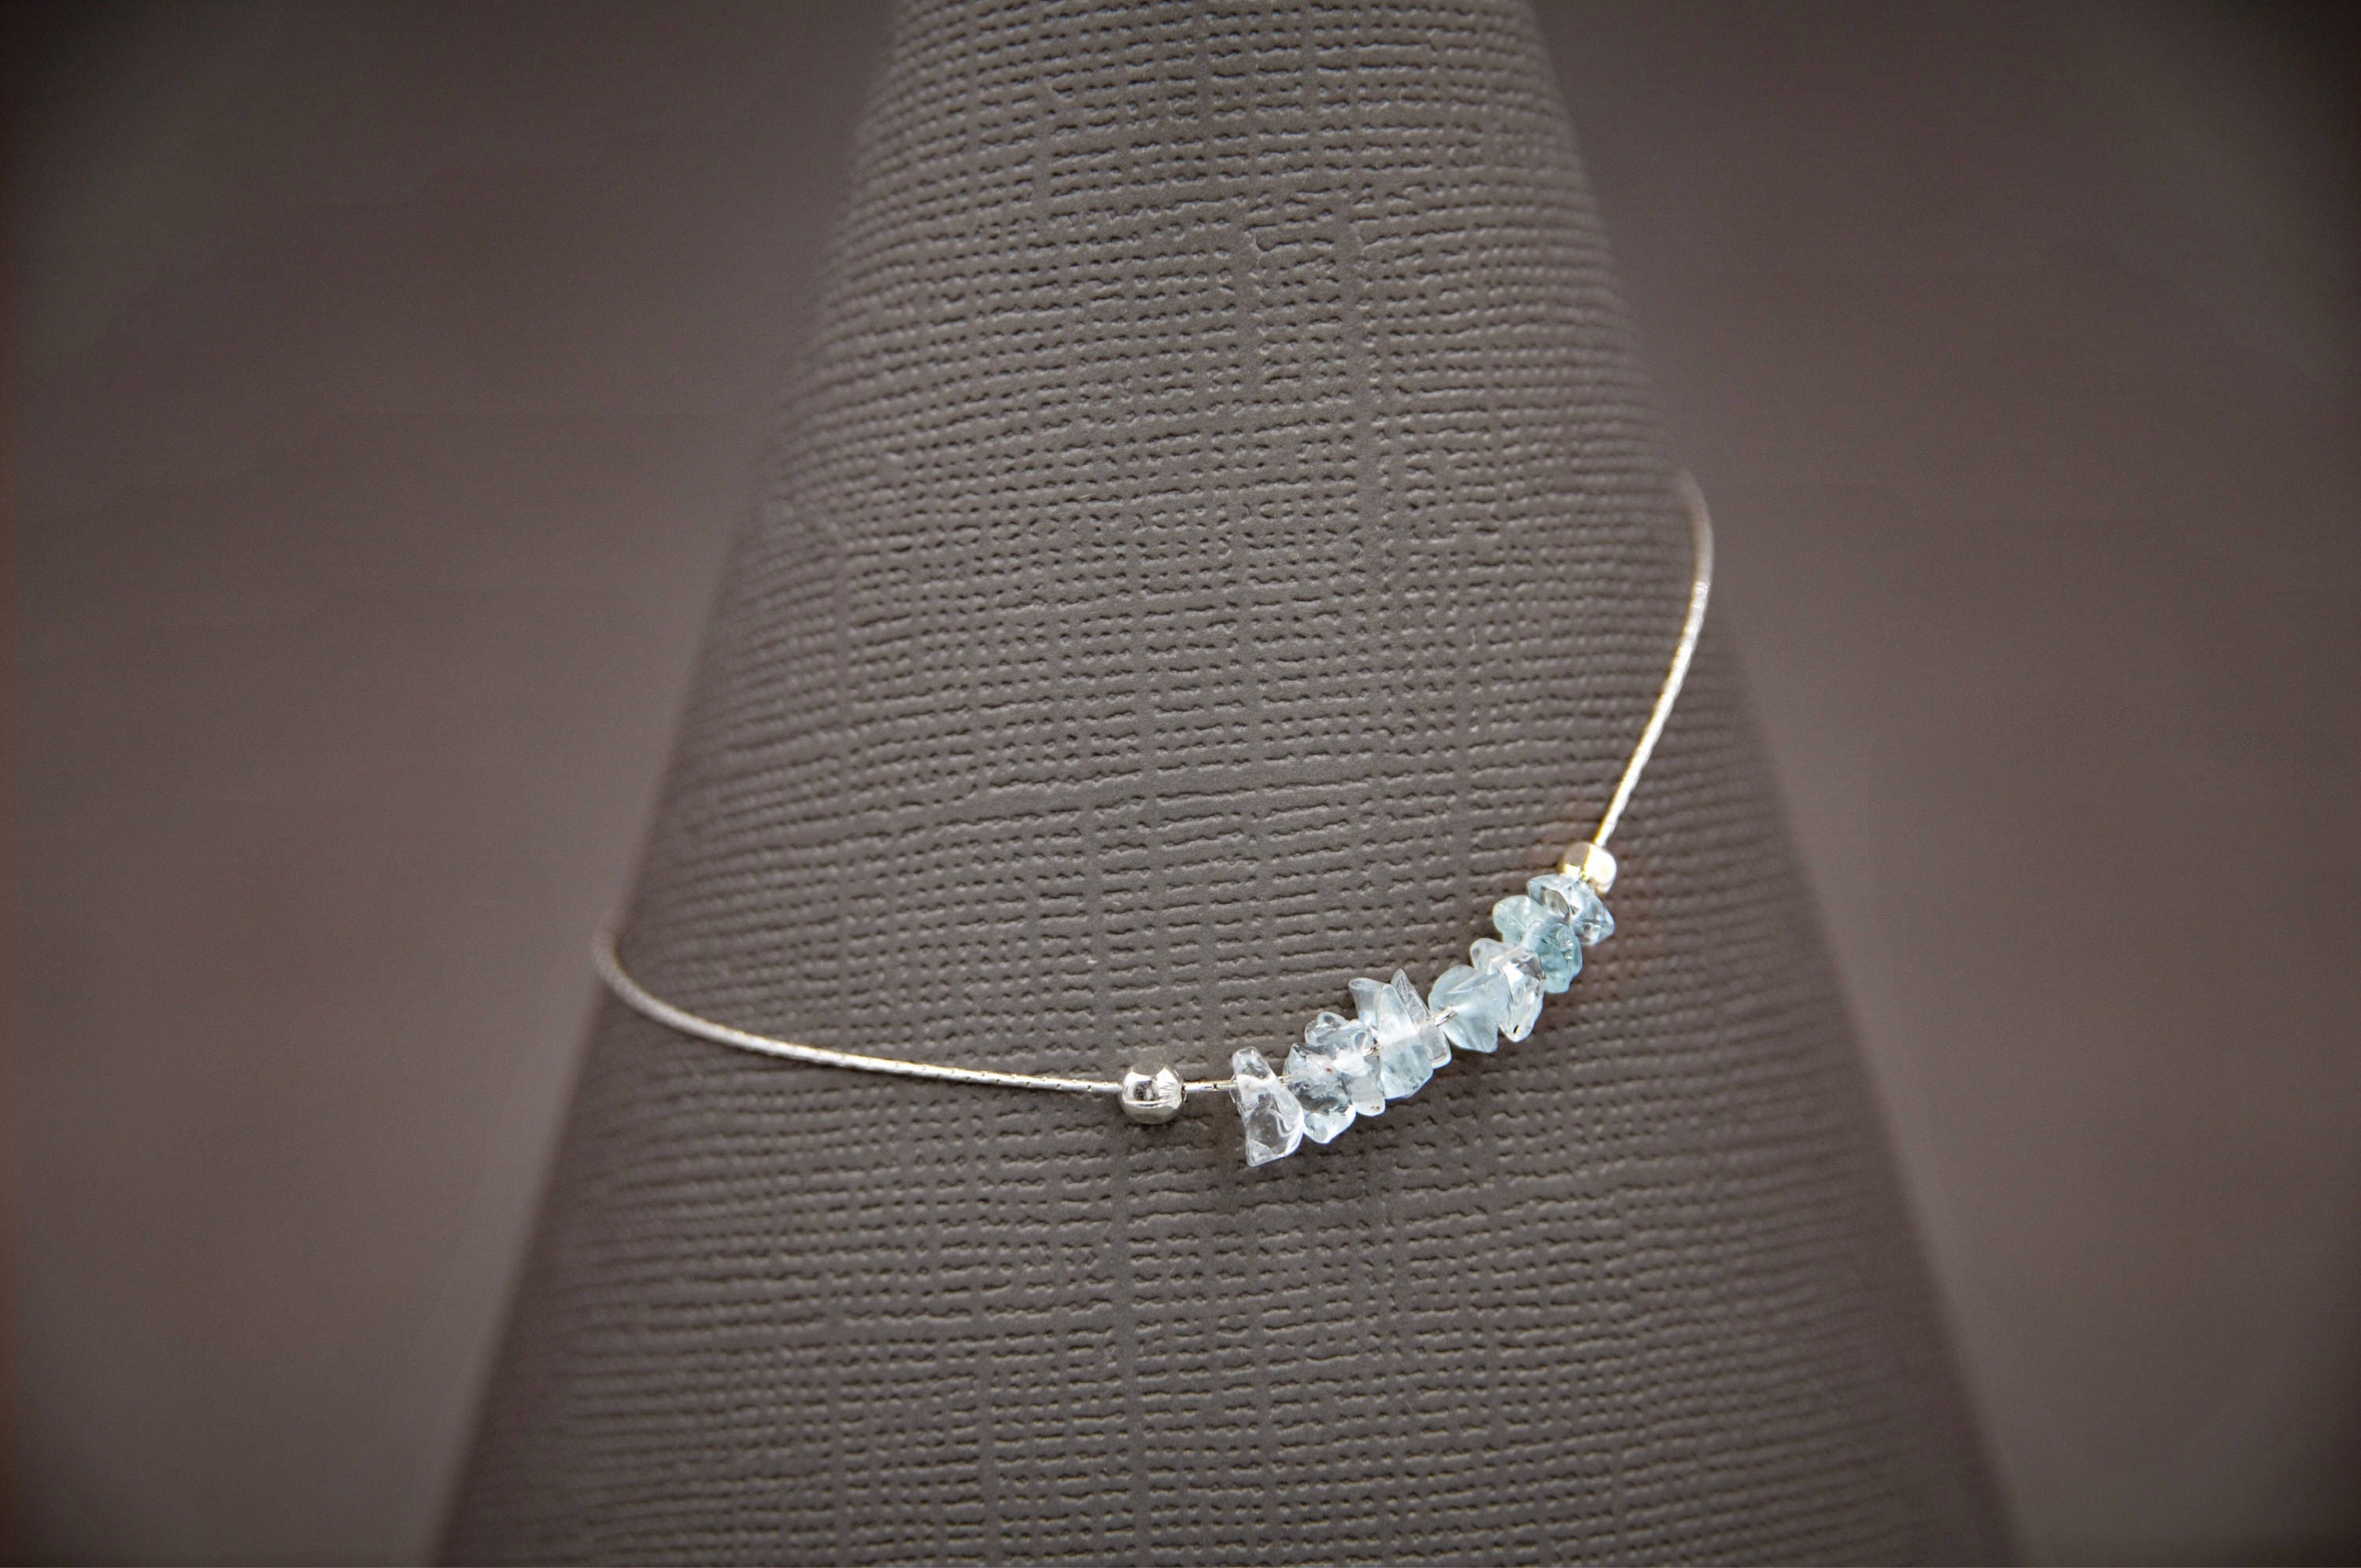 il p sterling march silver anklet jewelry crystals water beach summer aquamarine gemstone fullxfull birthstone body